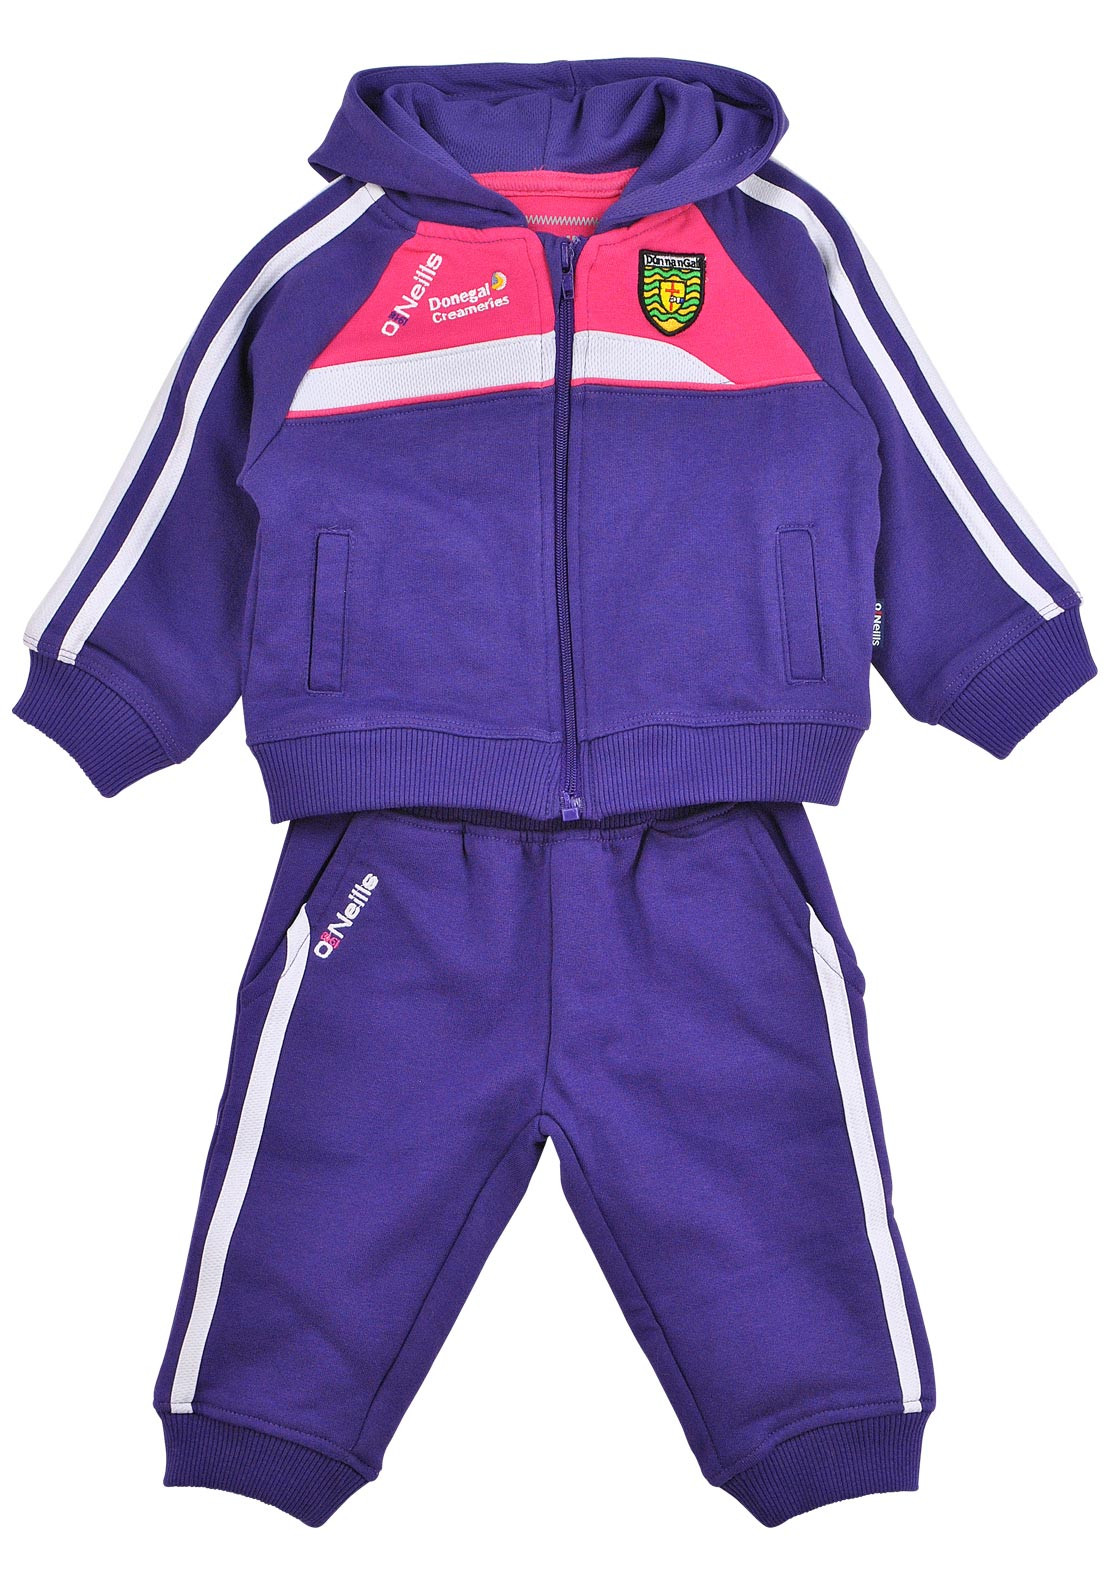 O'Neill's Baby Girls GAA Shauna Donegal Tracksuit, Purple